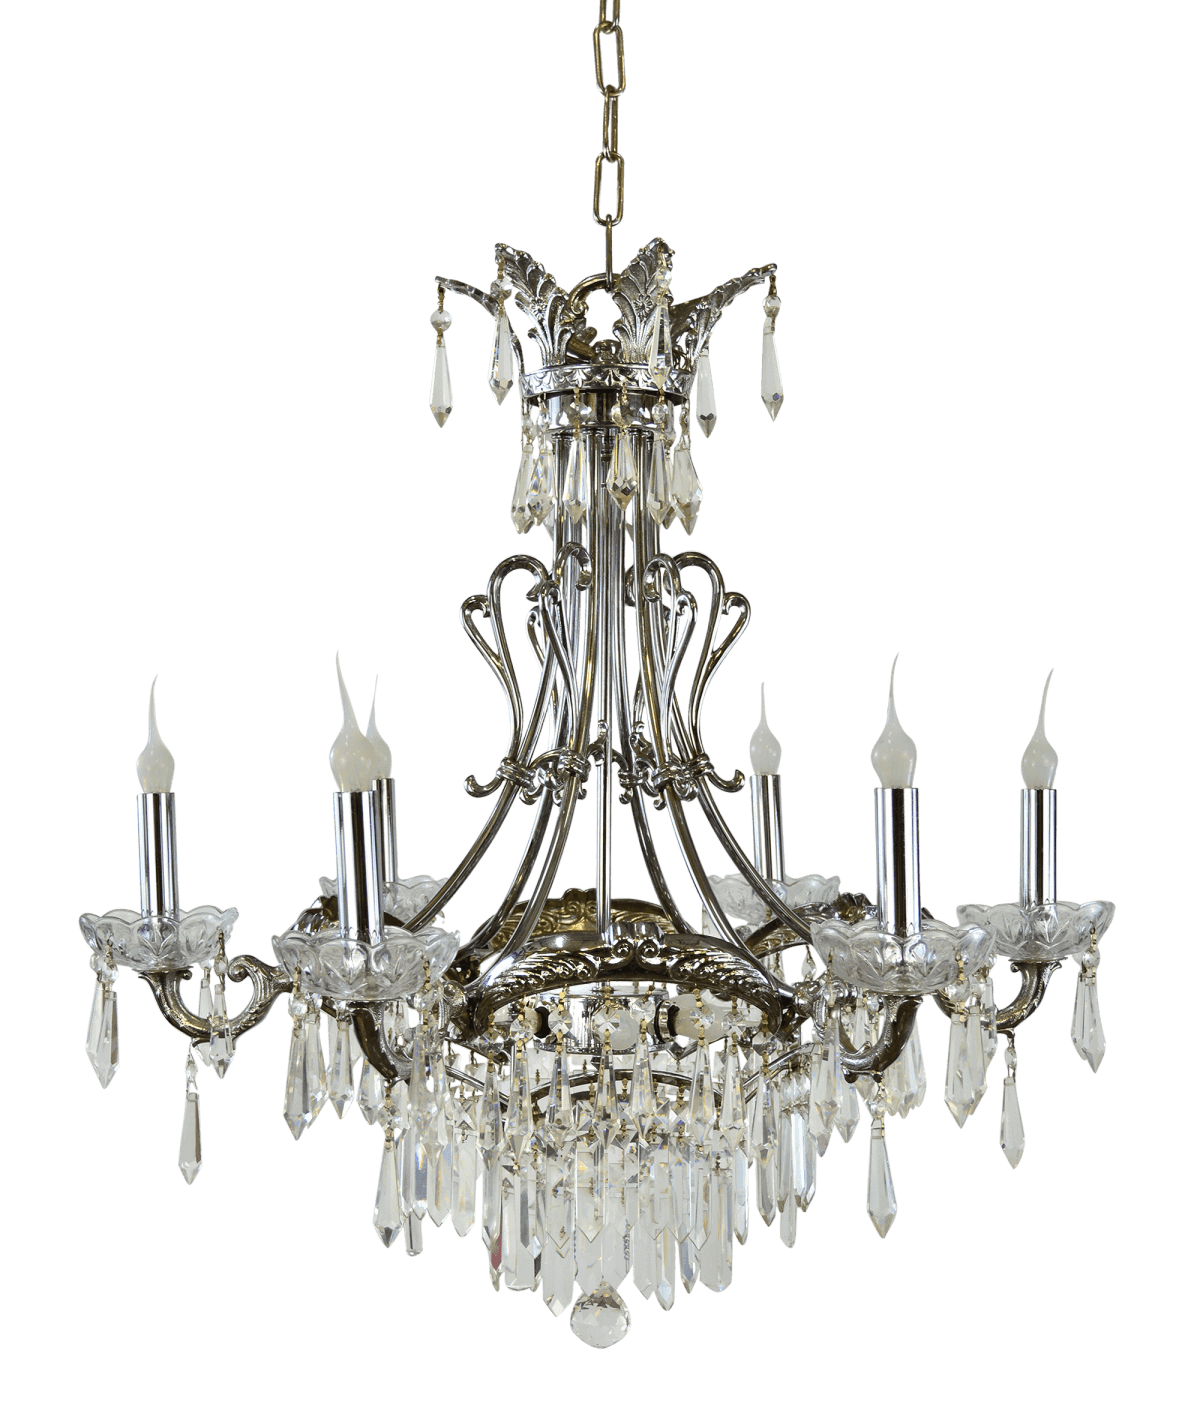 chandelier lamp png